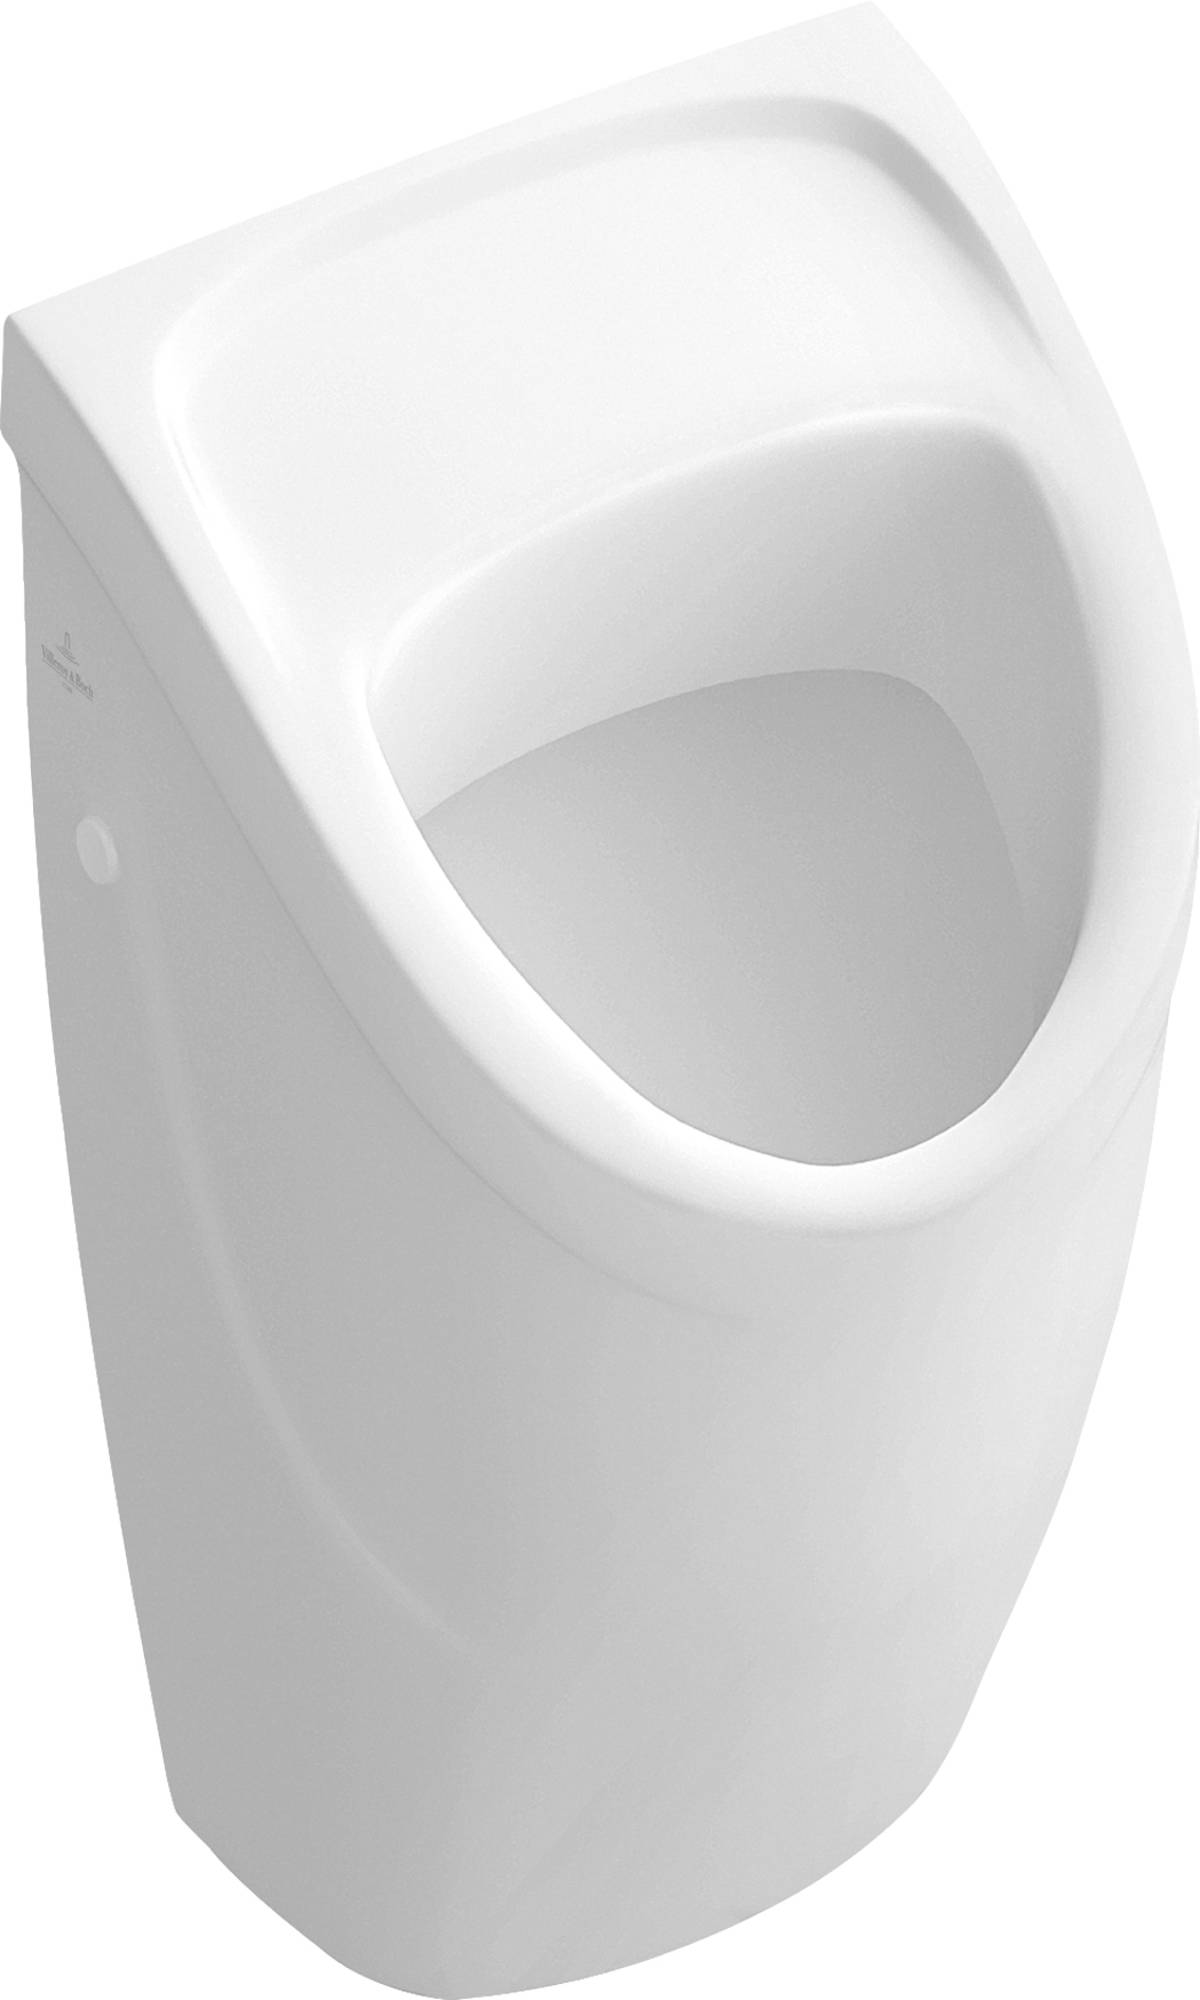 Villeroy & boch O.novo-omnia classic compact urinoir zonder deksel, wit